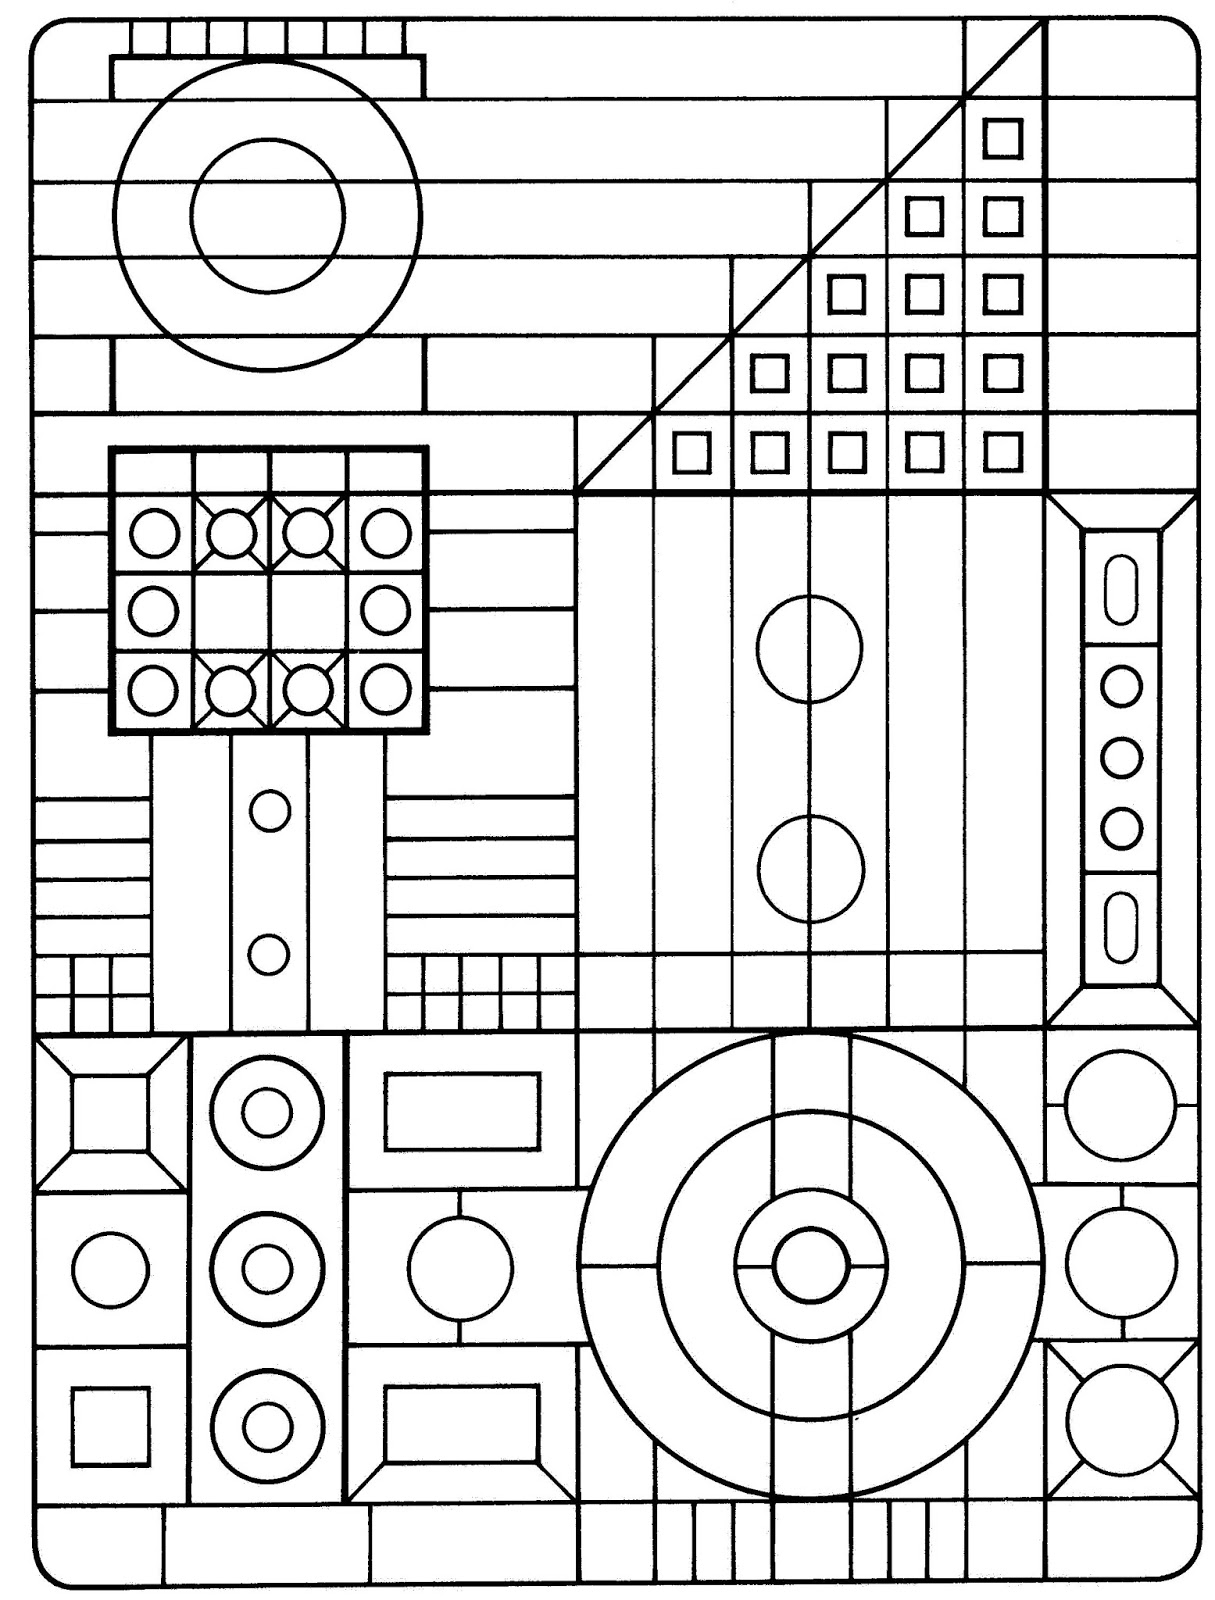 Basic shapes coloring pages ~ 50 Trippy Coloring Pages